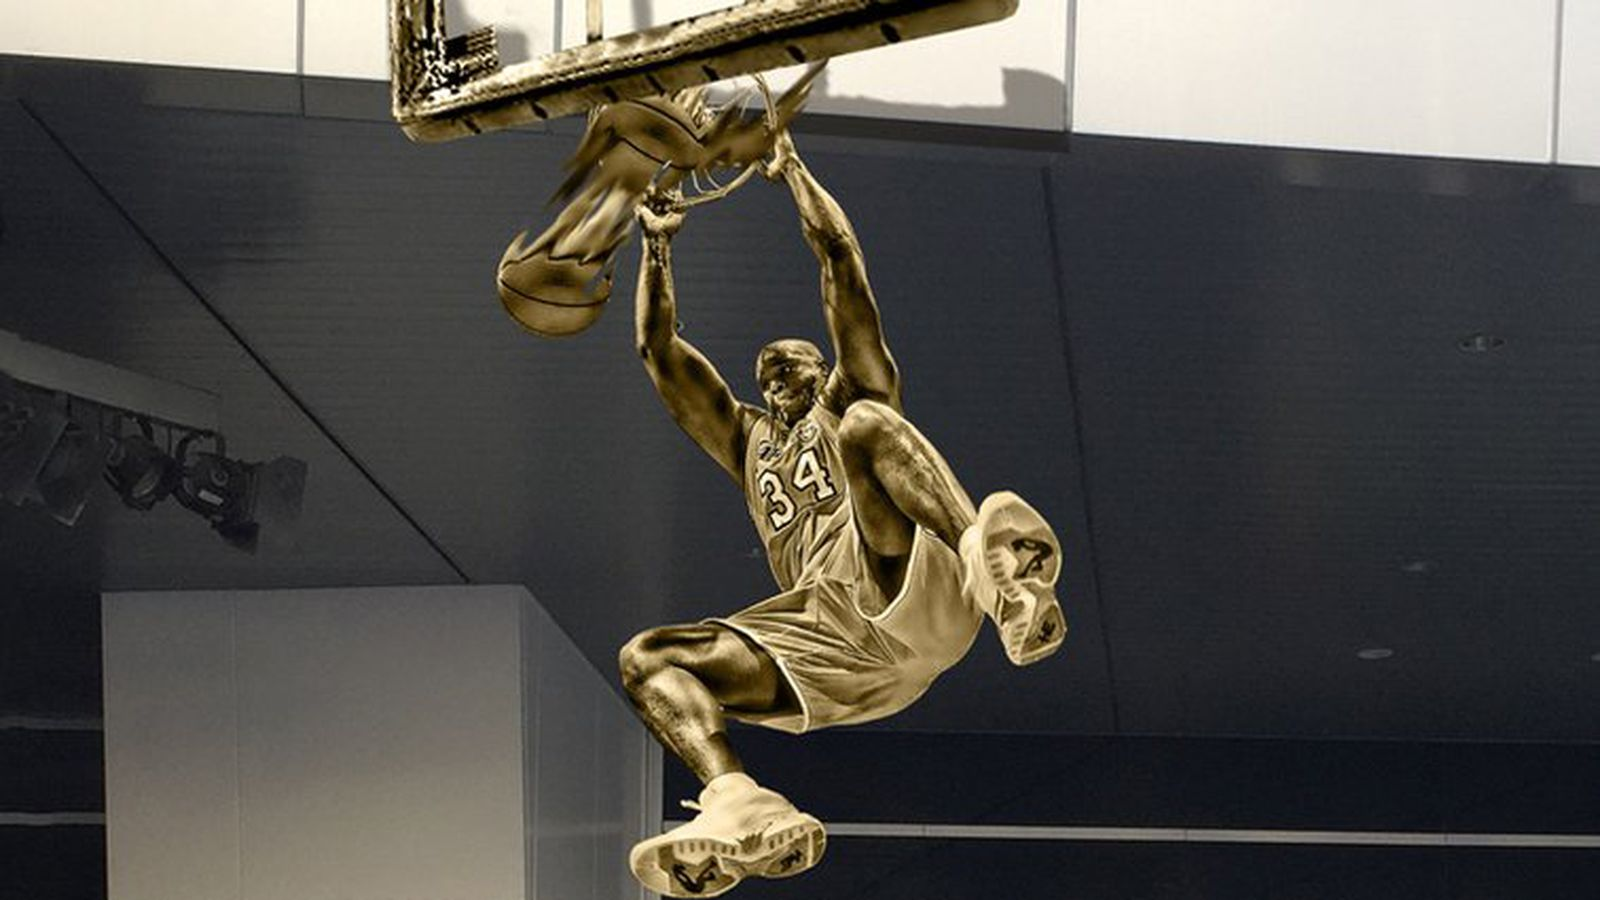 The Lakers Will Honor Shaquille O Neal With This Gold